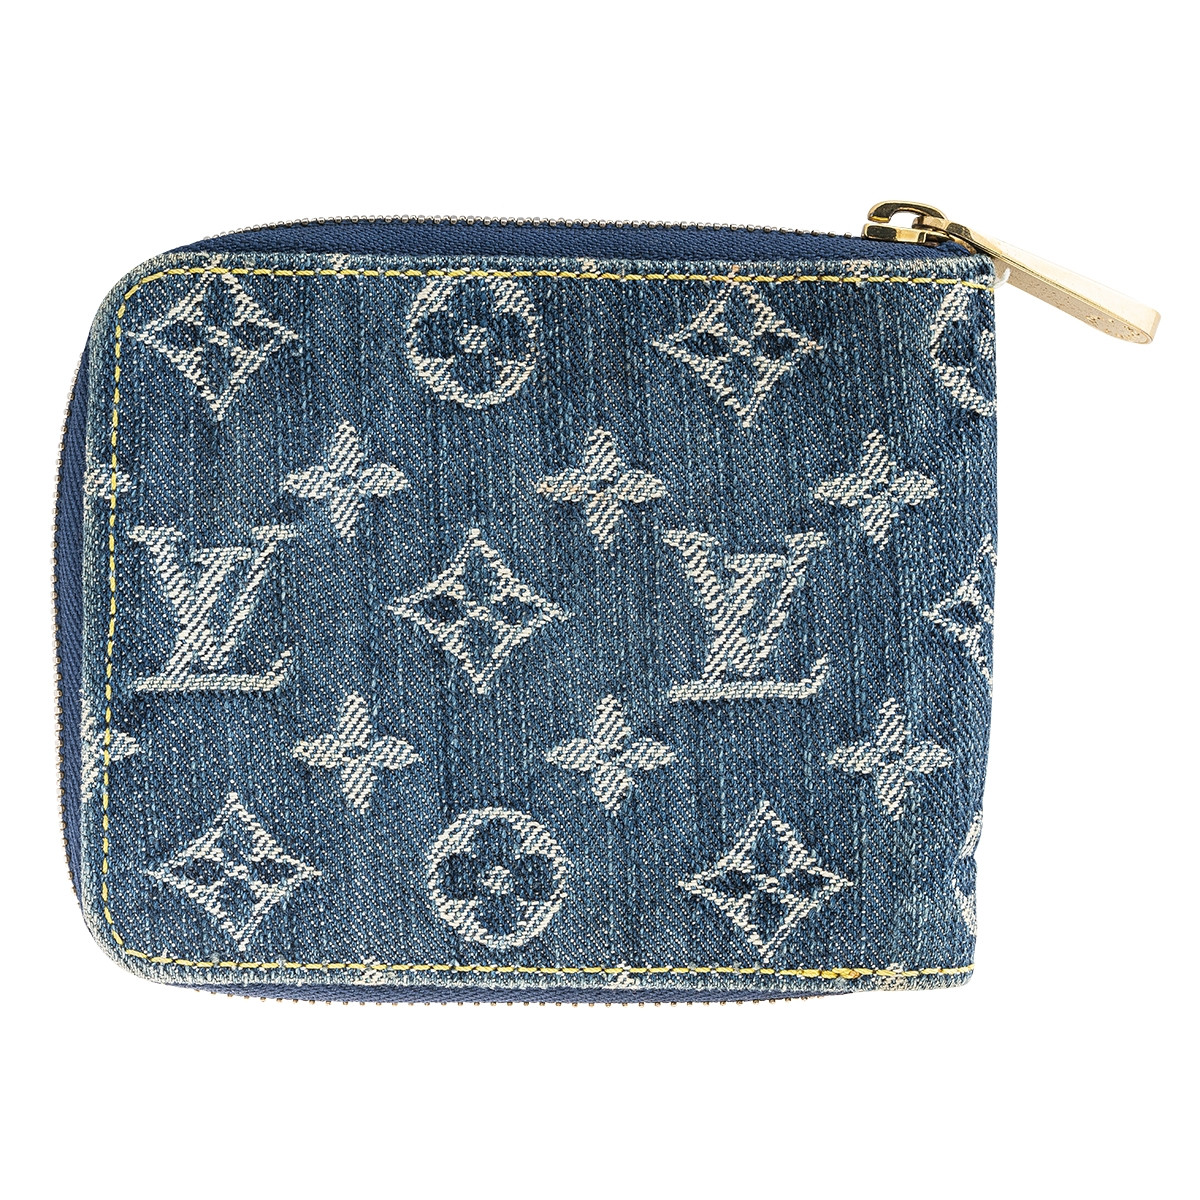 Vintage Denim Louis Vuitton Monogram Small Zippy Wallet